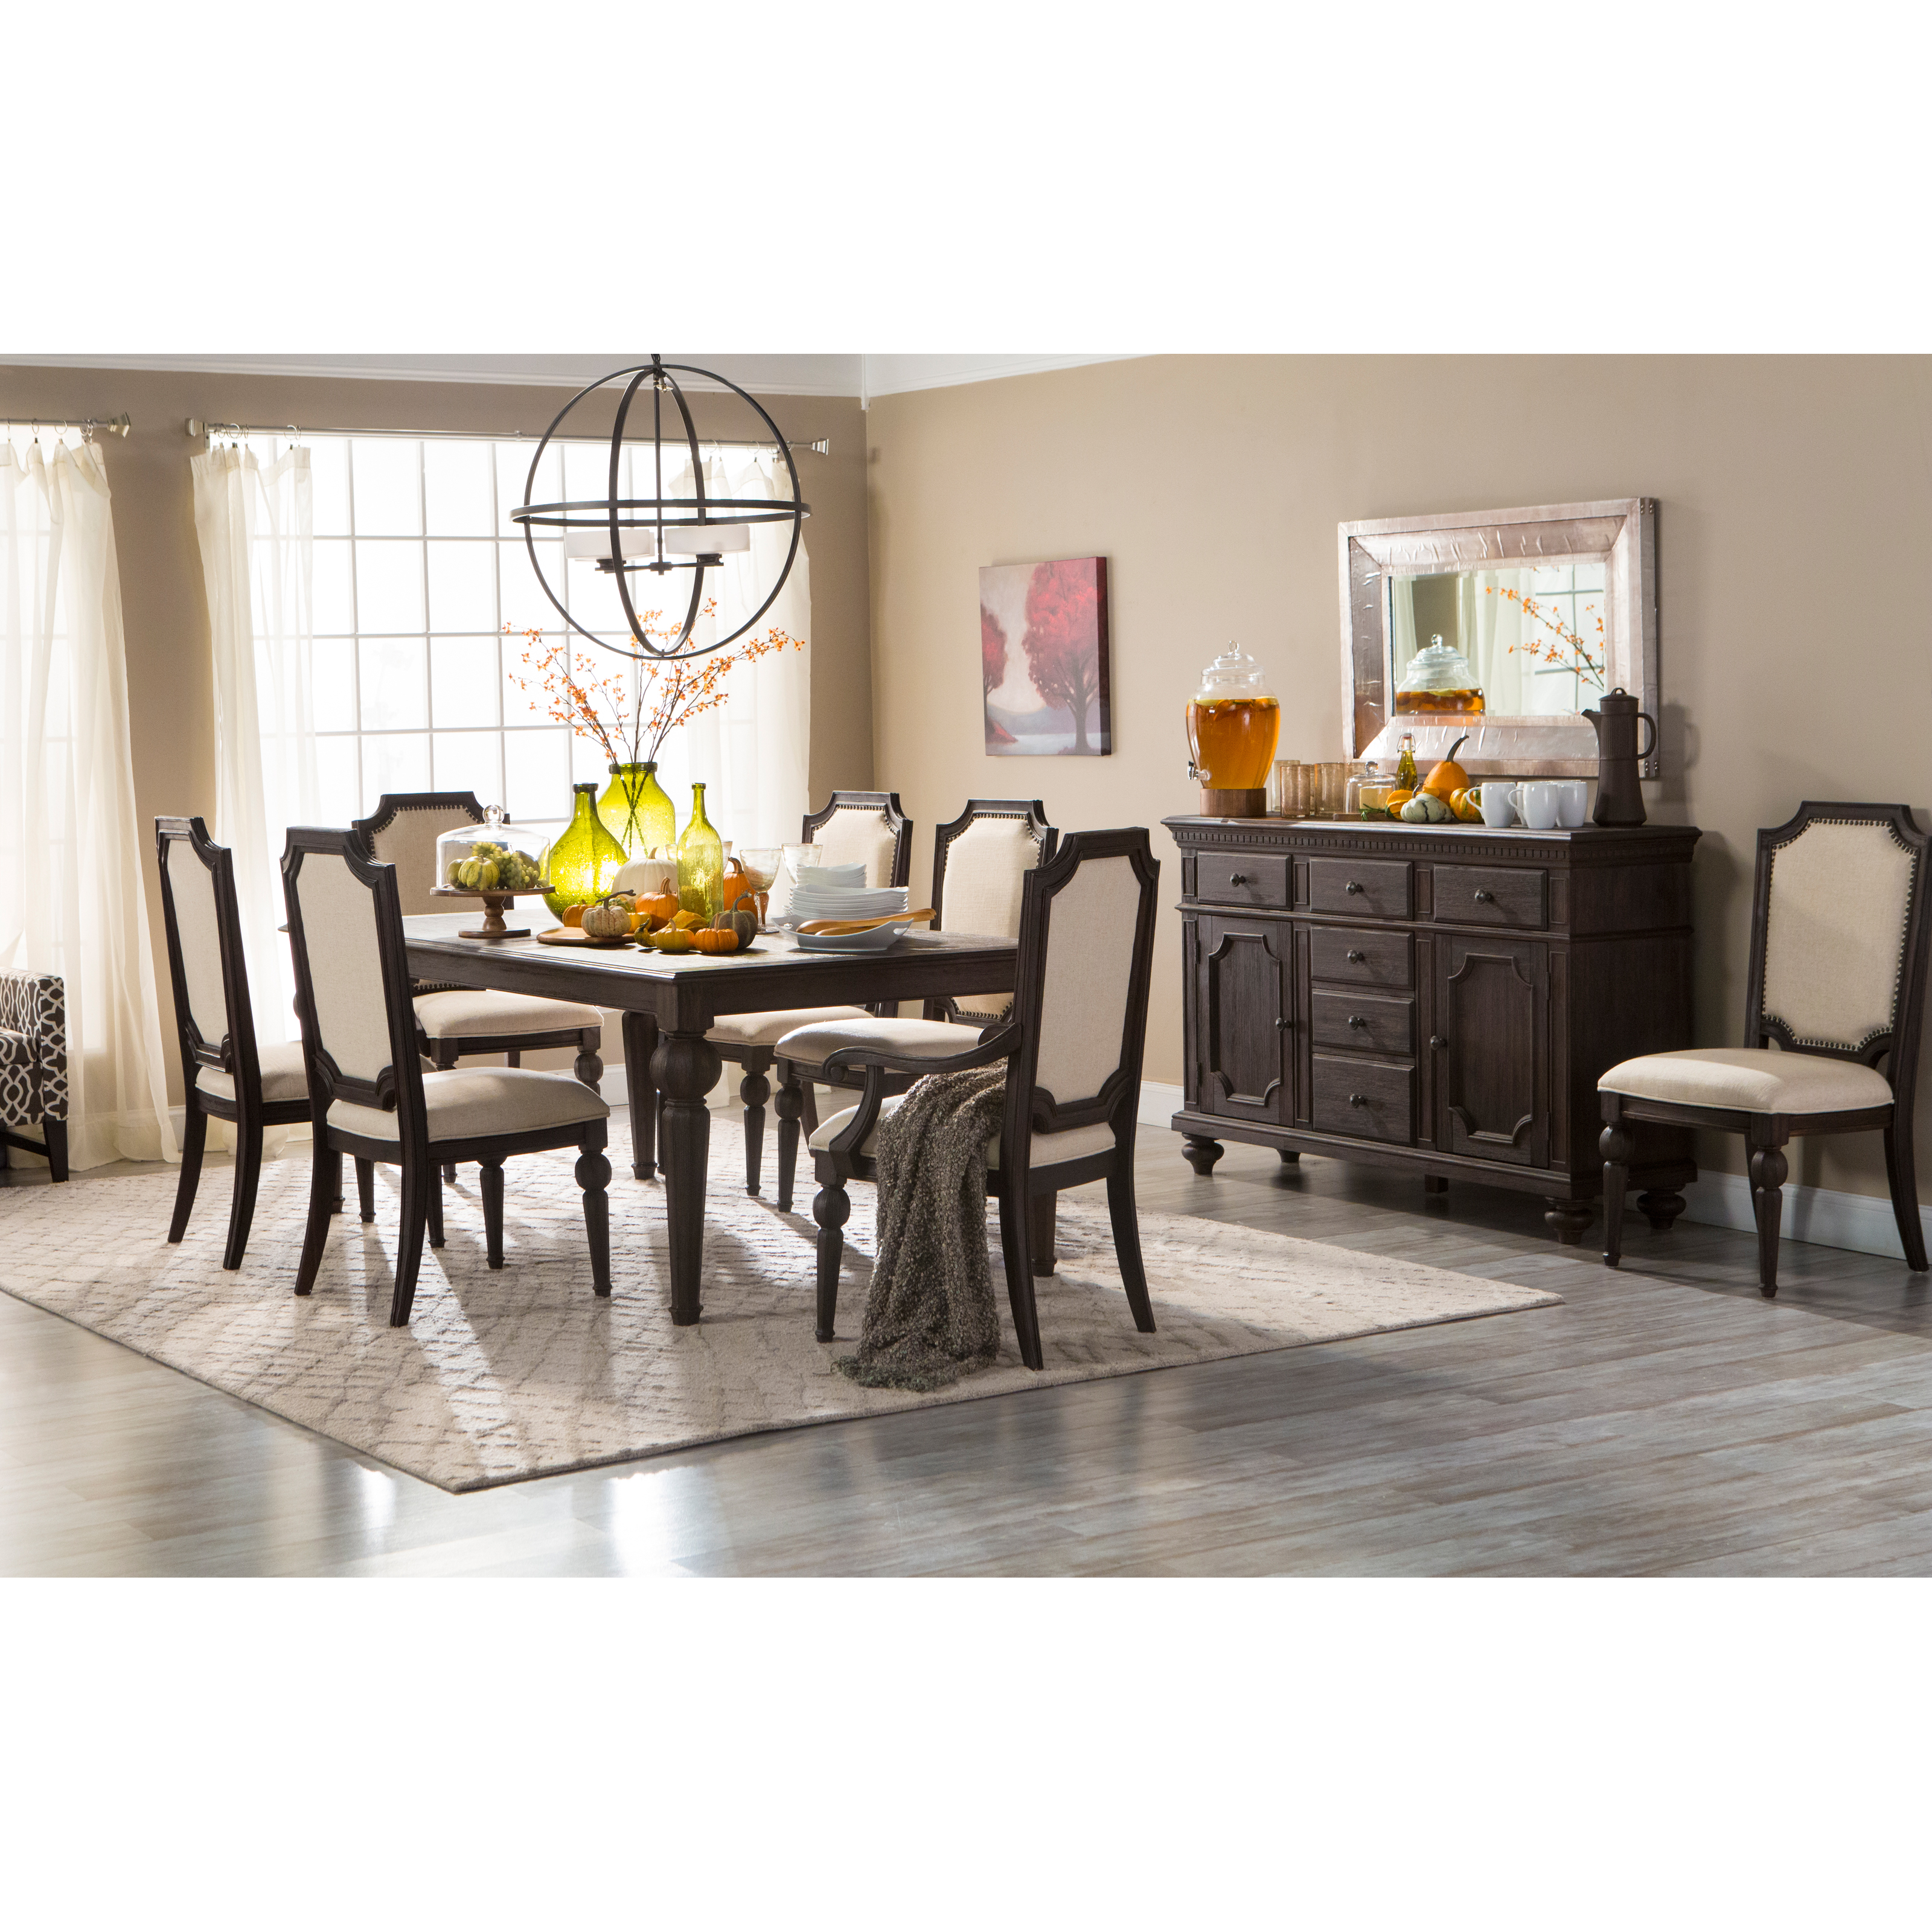 Steve Silver Cayden 9 Piece Dining Table Set With Optional Buffet Hutch